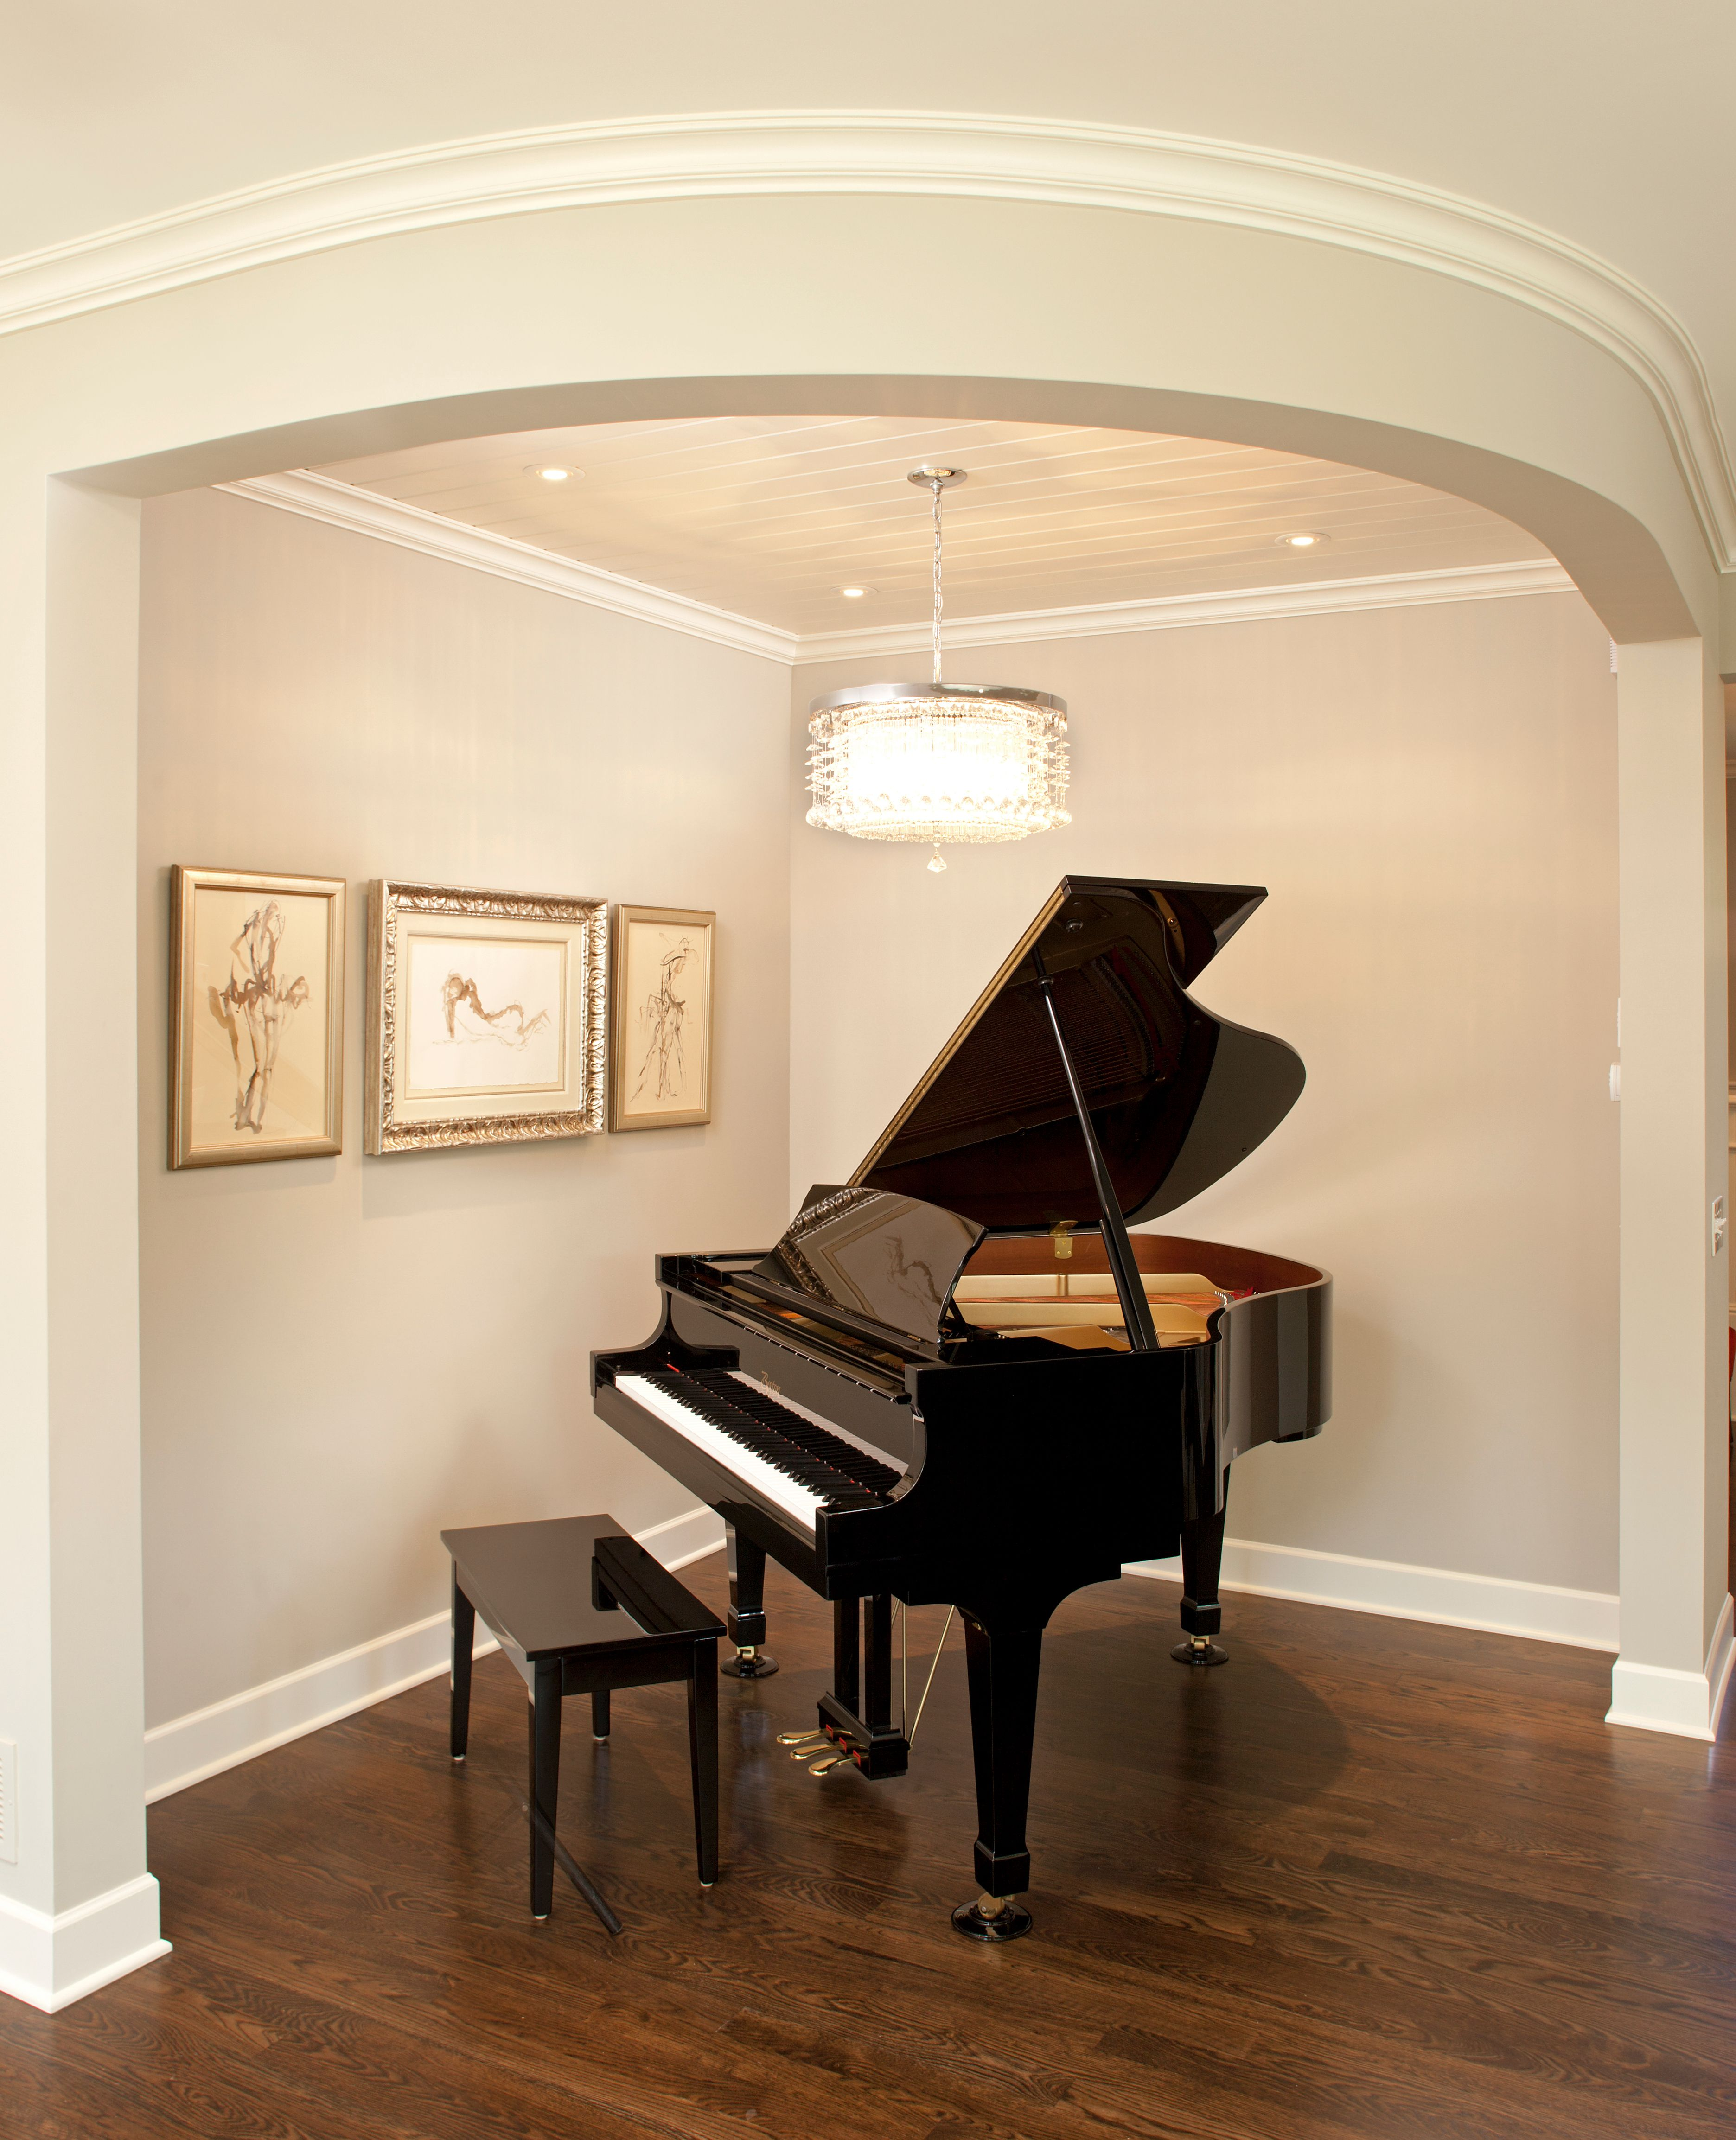 Baby Grand Piano On Dark Wood Floors With White Enameled Trim Dome Light Fixture And Perfectly Lined Frames Creates A Clean Fresh E For Music